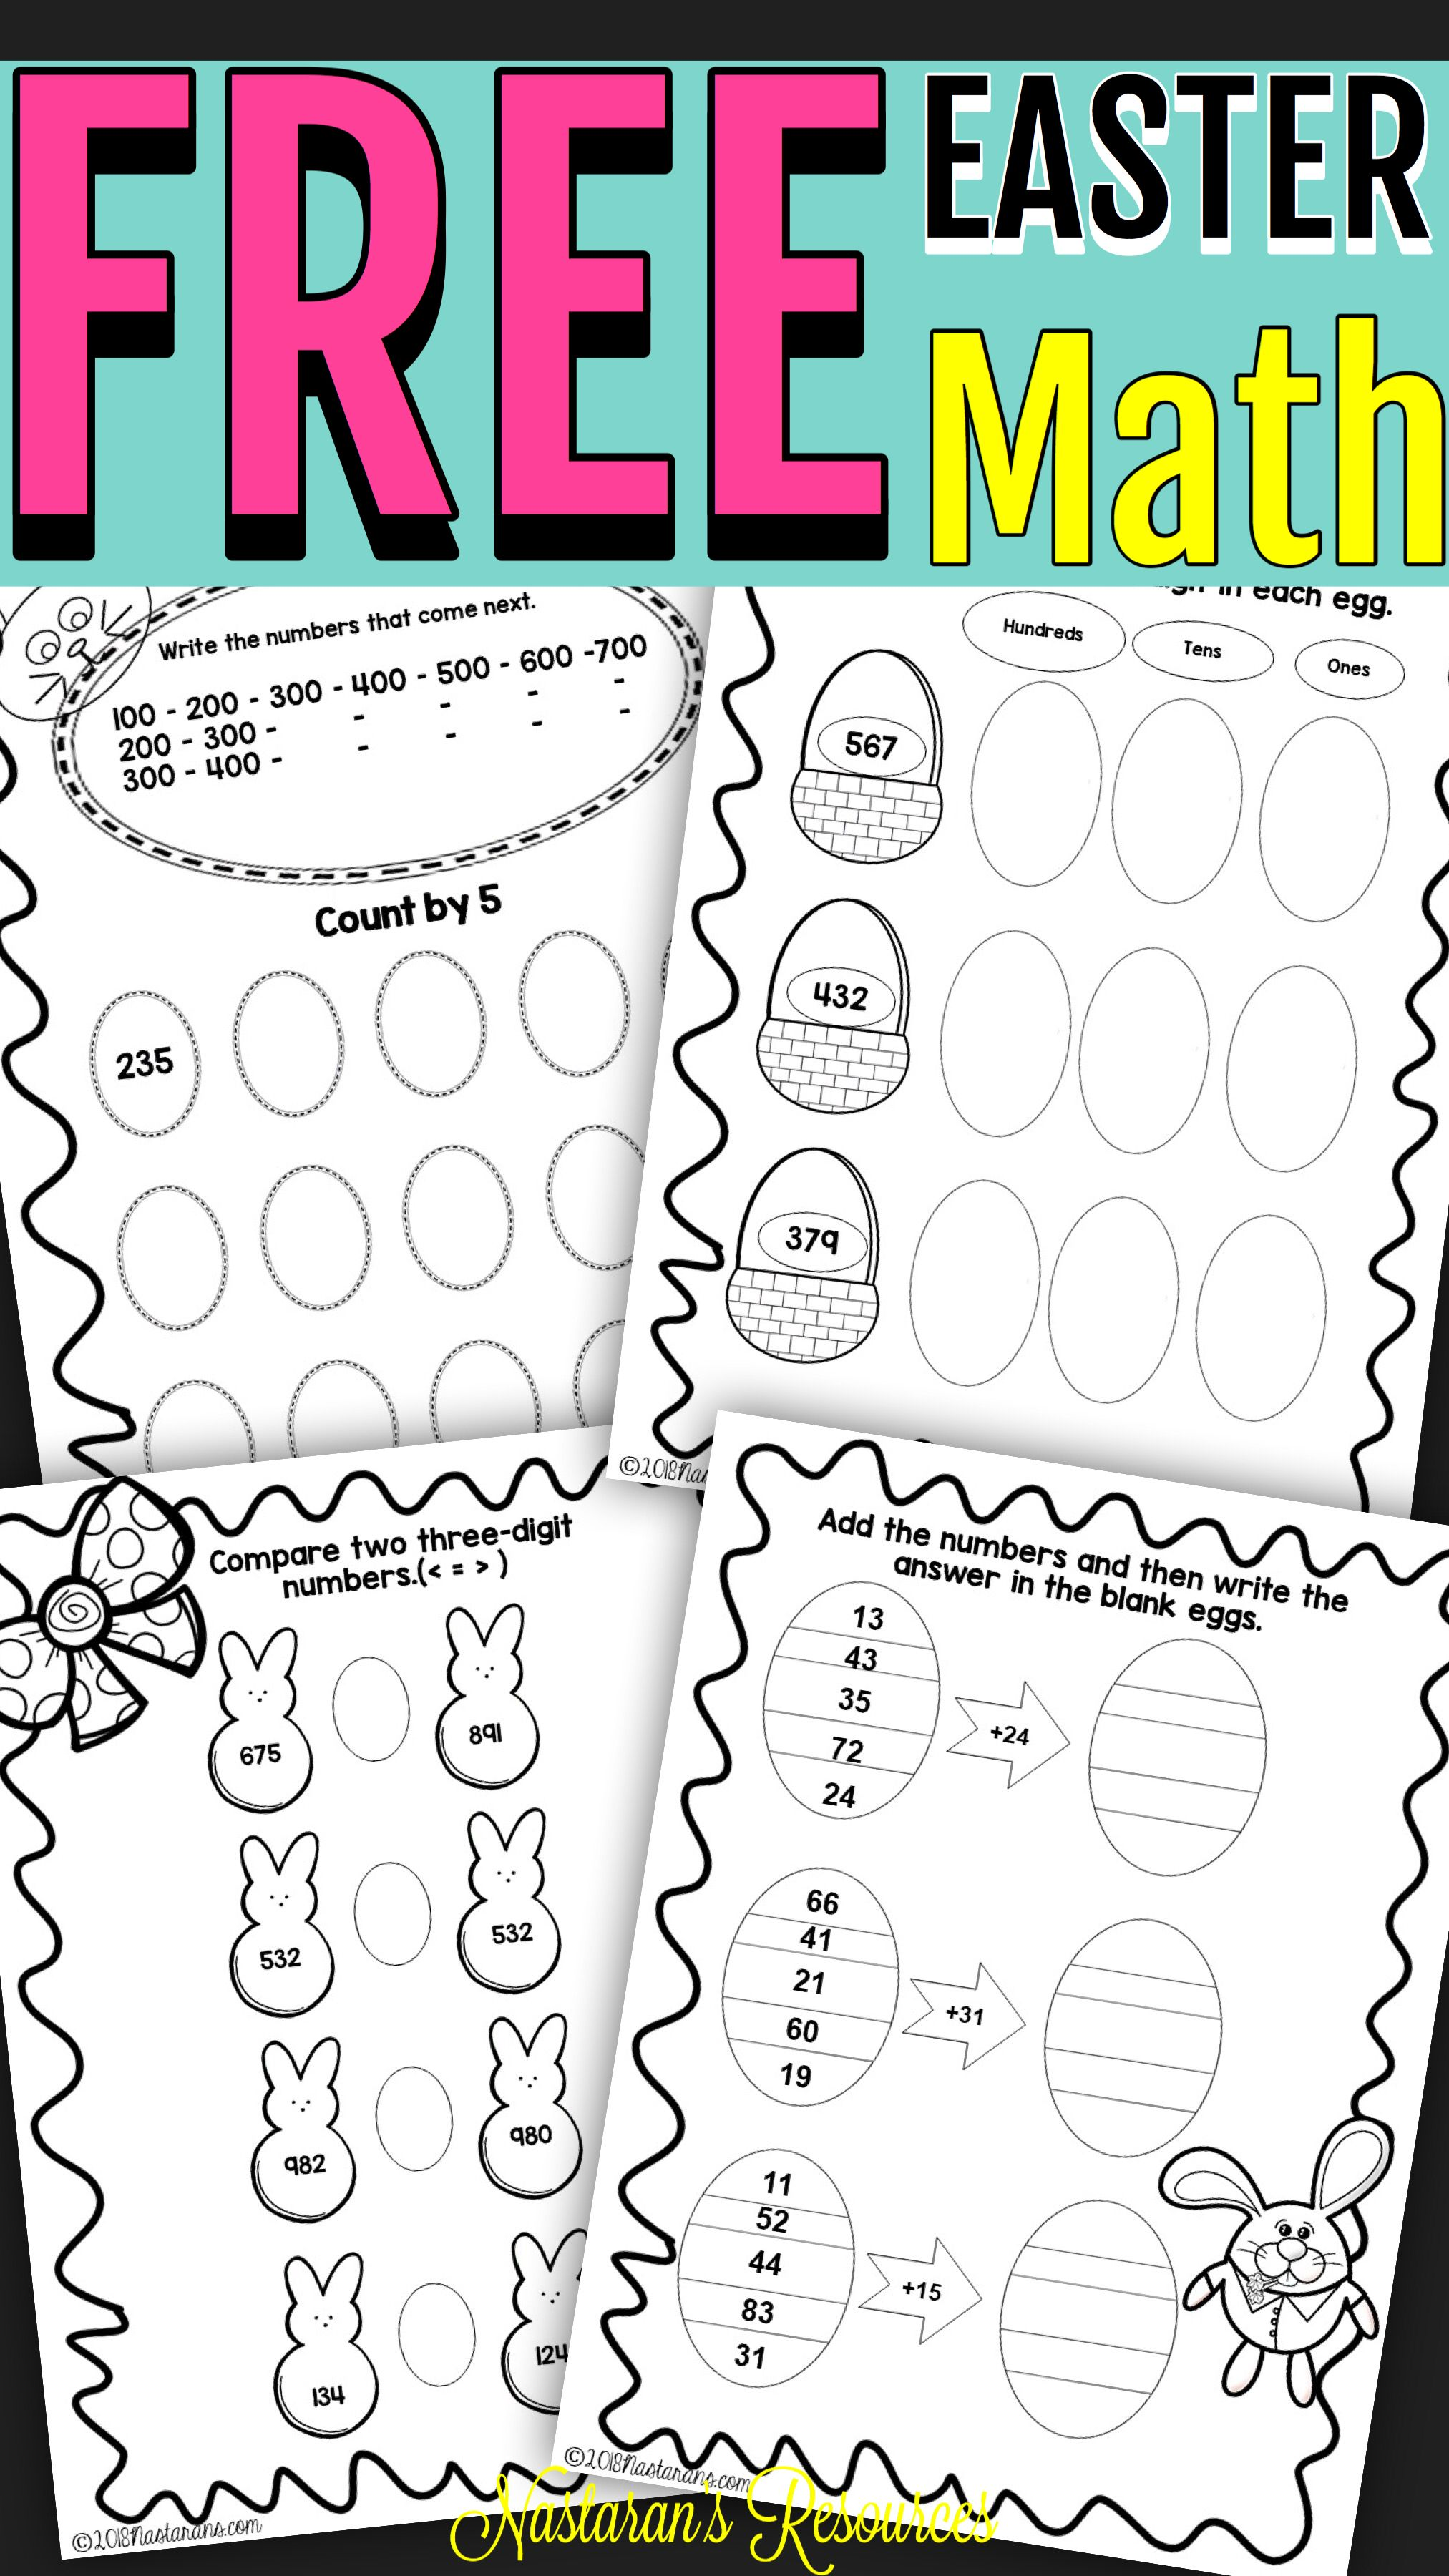 Free Easter Worksheets Easter Math Worksheets Easter Writing Prompts Easter Math [ 3600 x 2025 Pixel ]